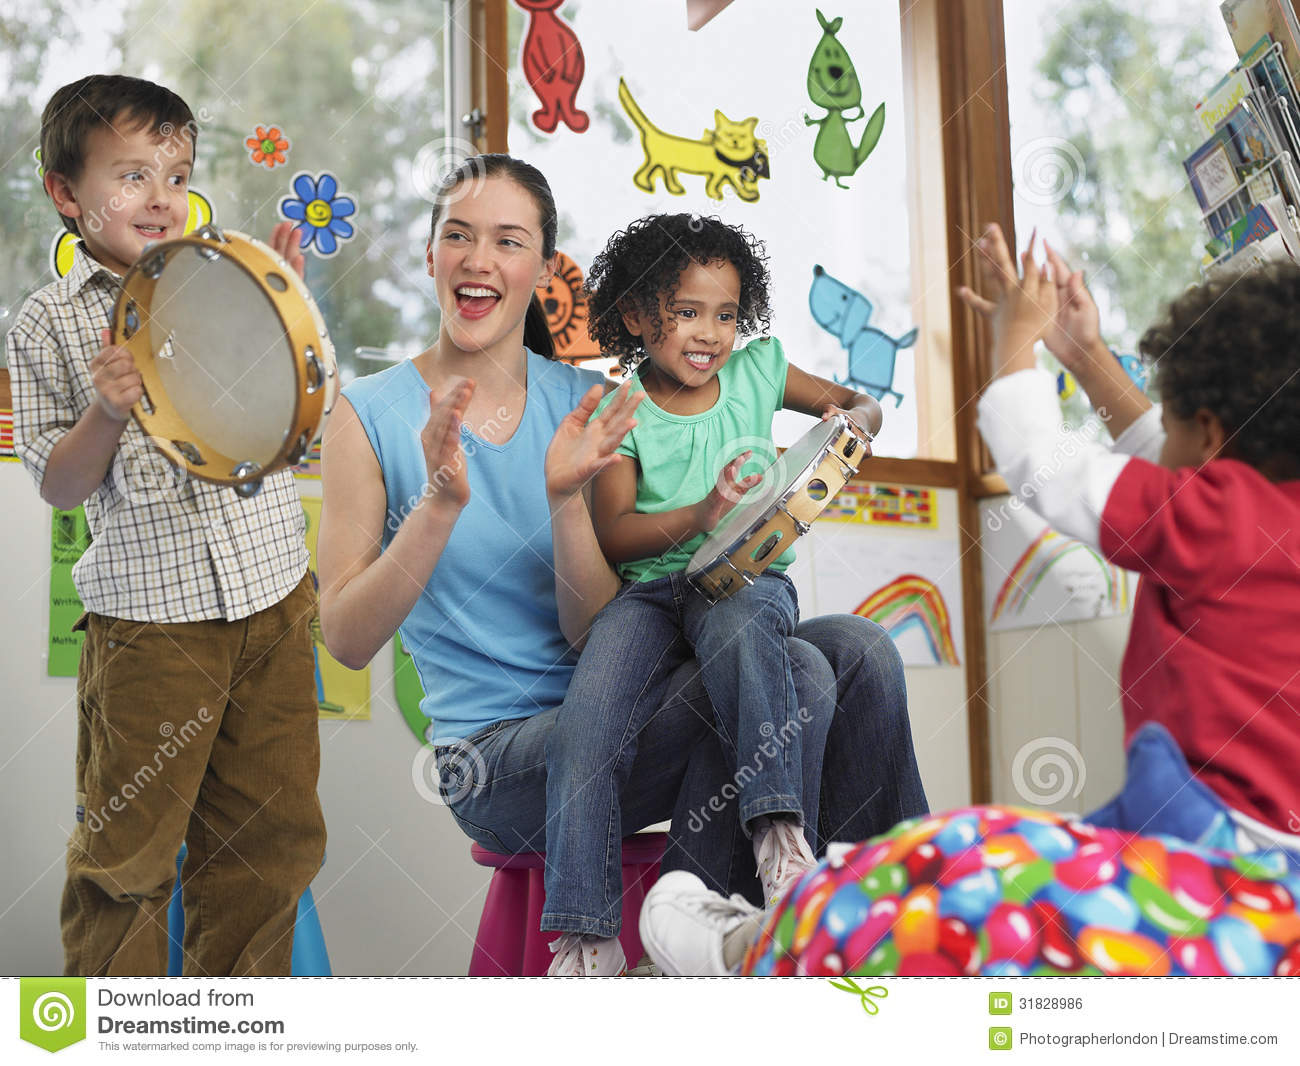 teacher-children-playing-music-class-young-classroom-31828986